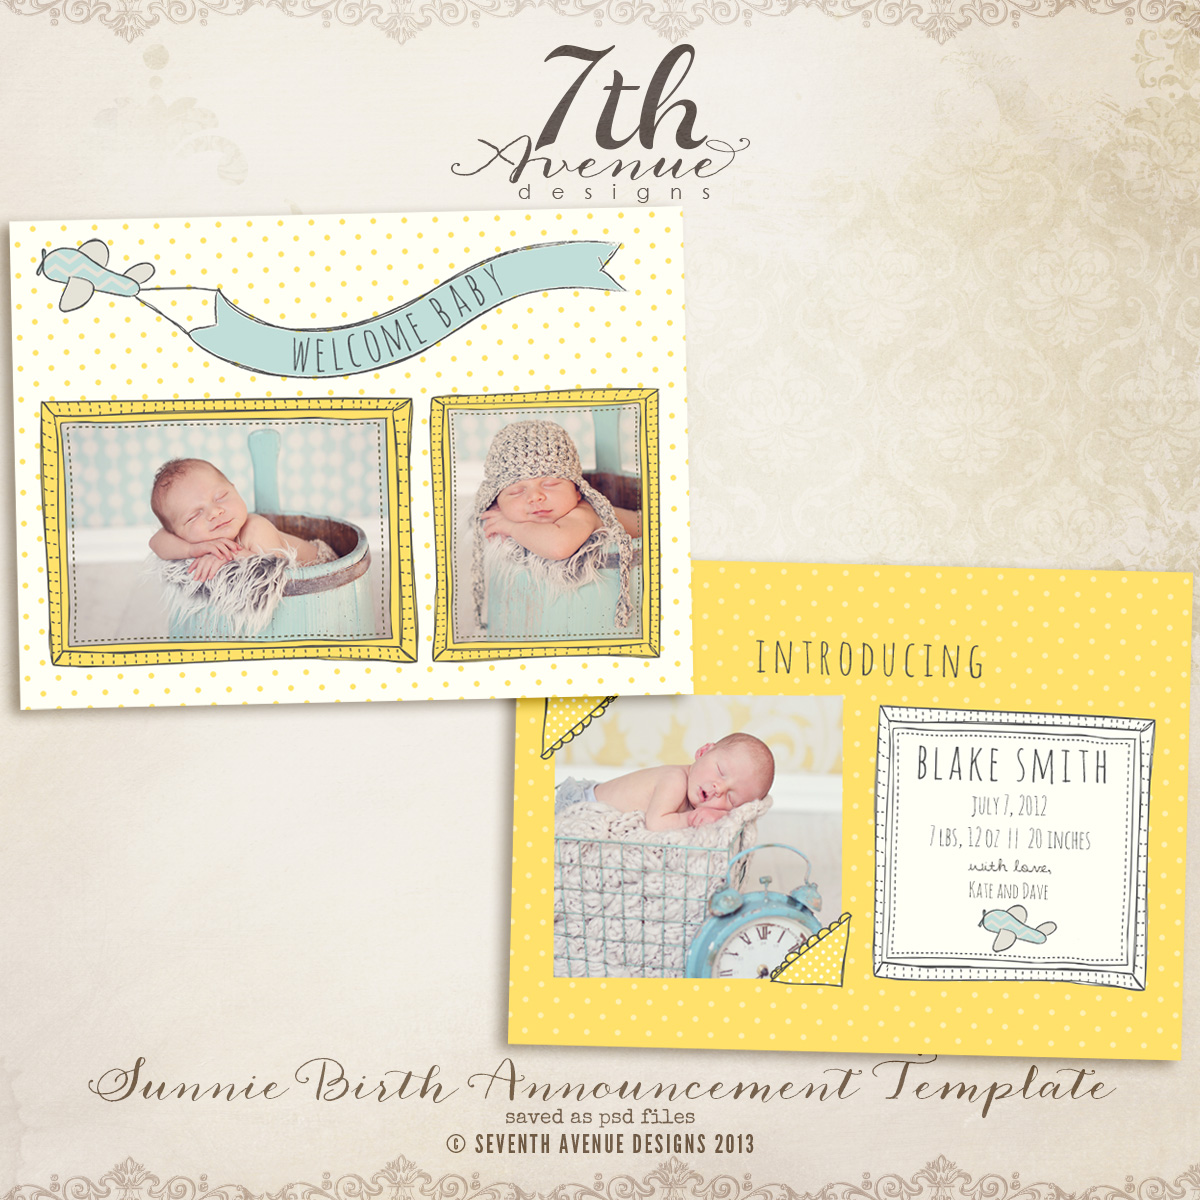 Sunnie Birth Announcement Card Templates